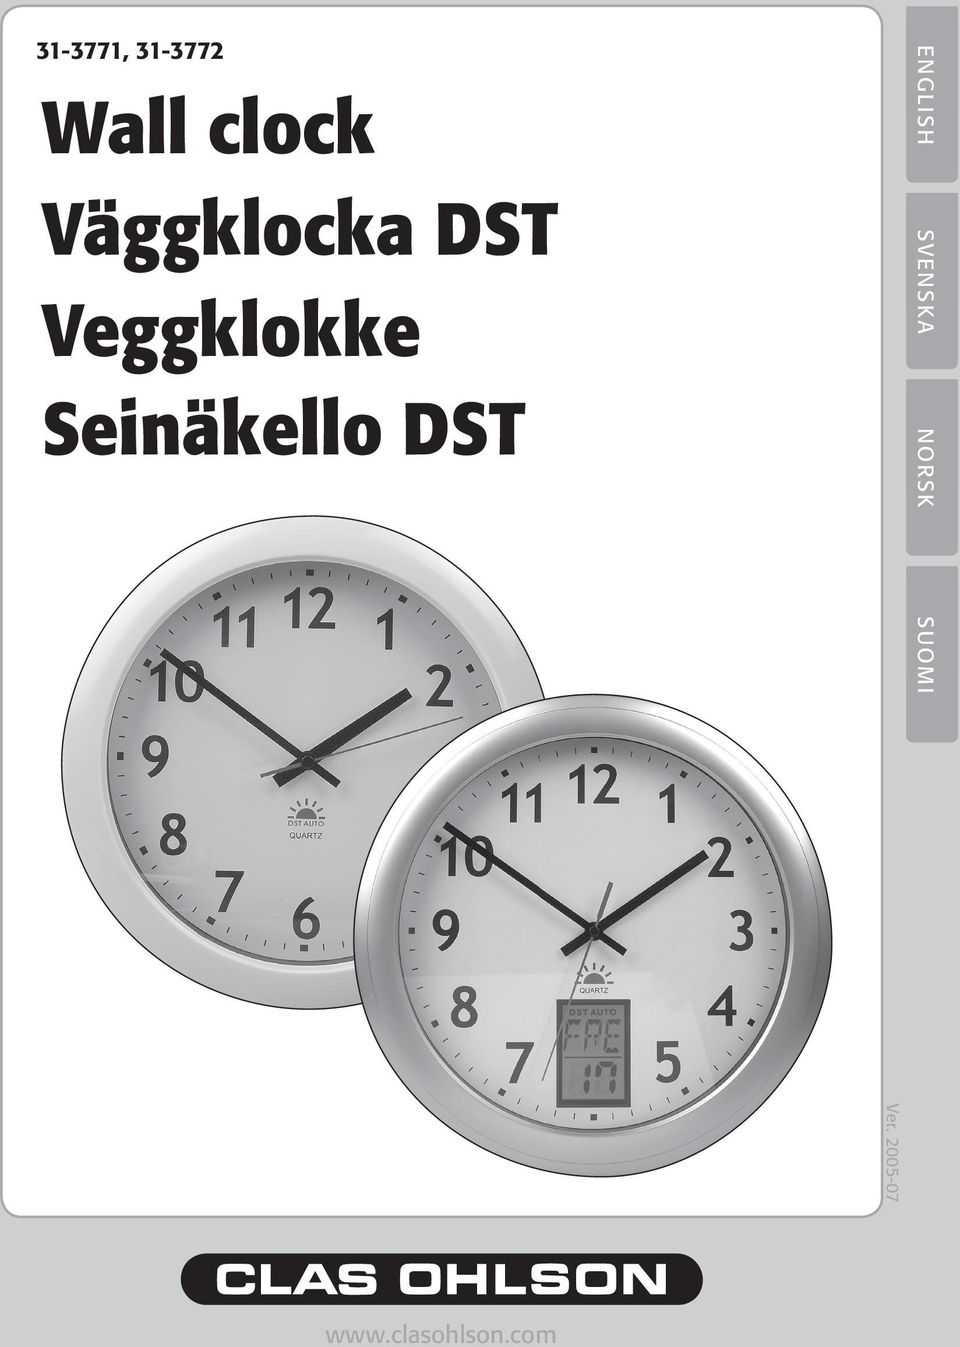 Seinäkello DST ENGLISH SVENSKA